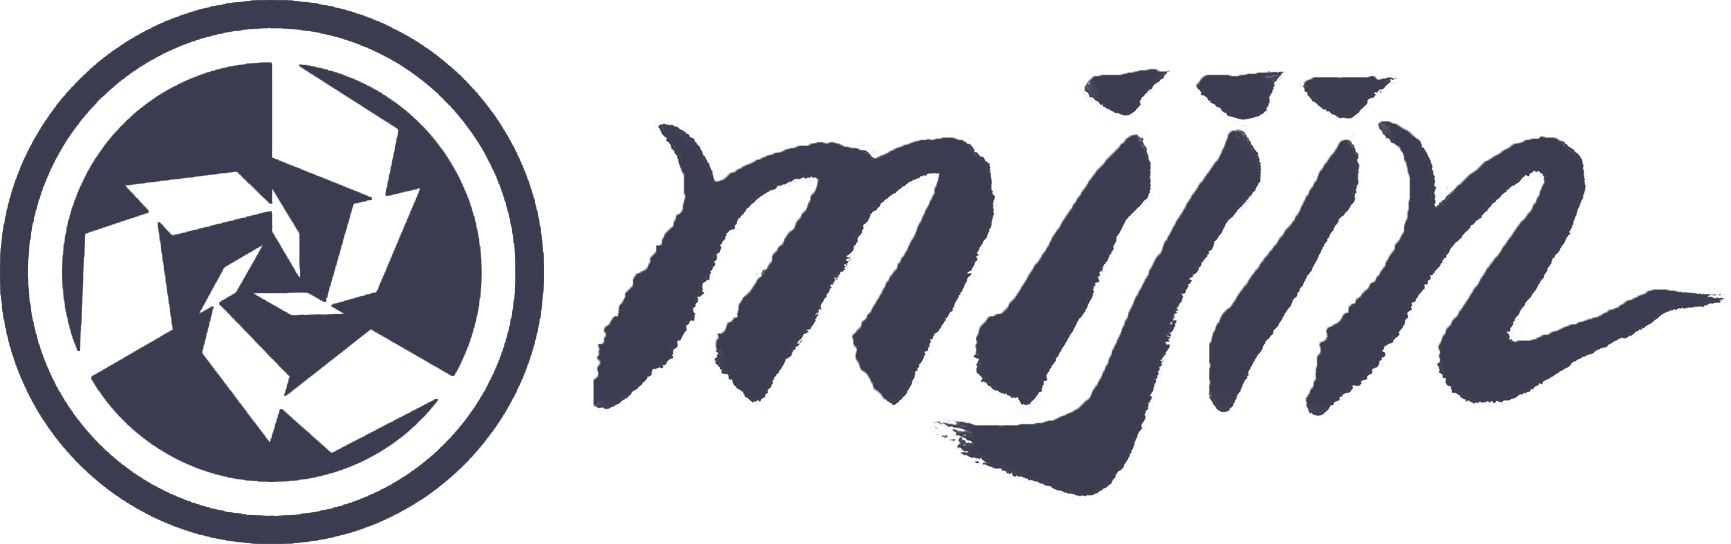 mijin-logo-kachi-color